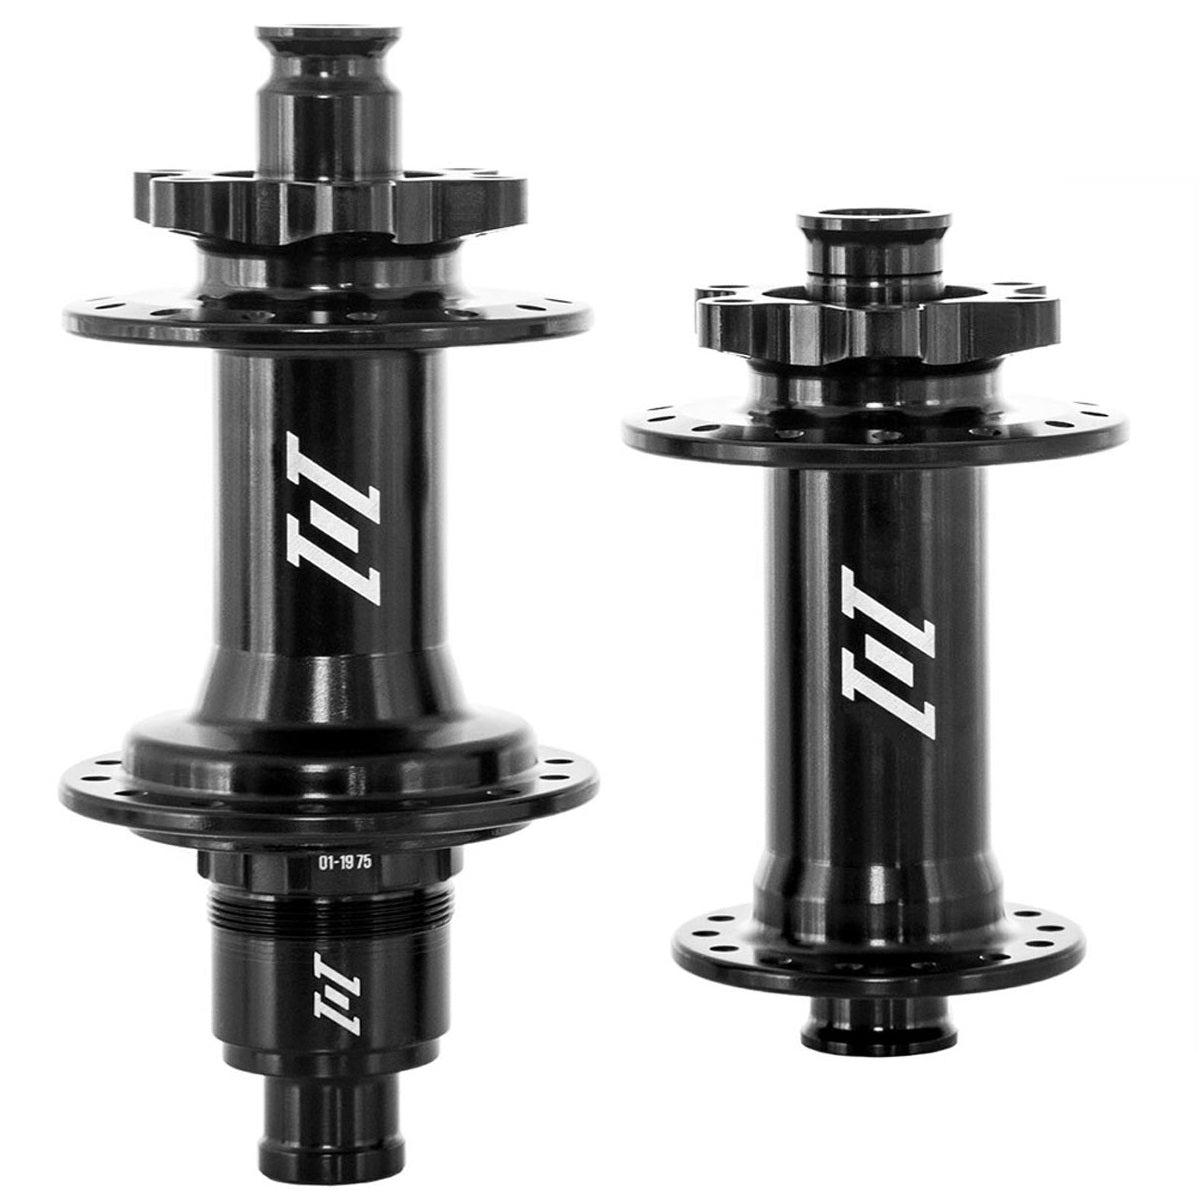 I9 101 CLASSIC 6 BOLT, BOOST HUBSET [AVAILABLE ON PRE-ORDER]